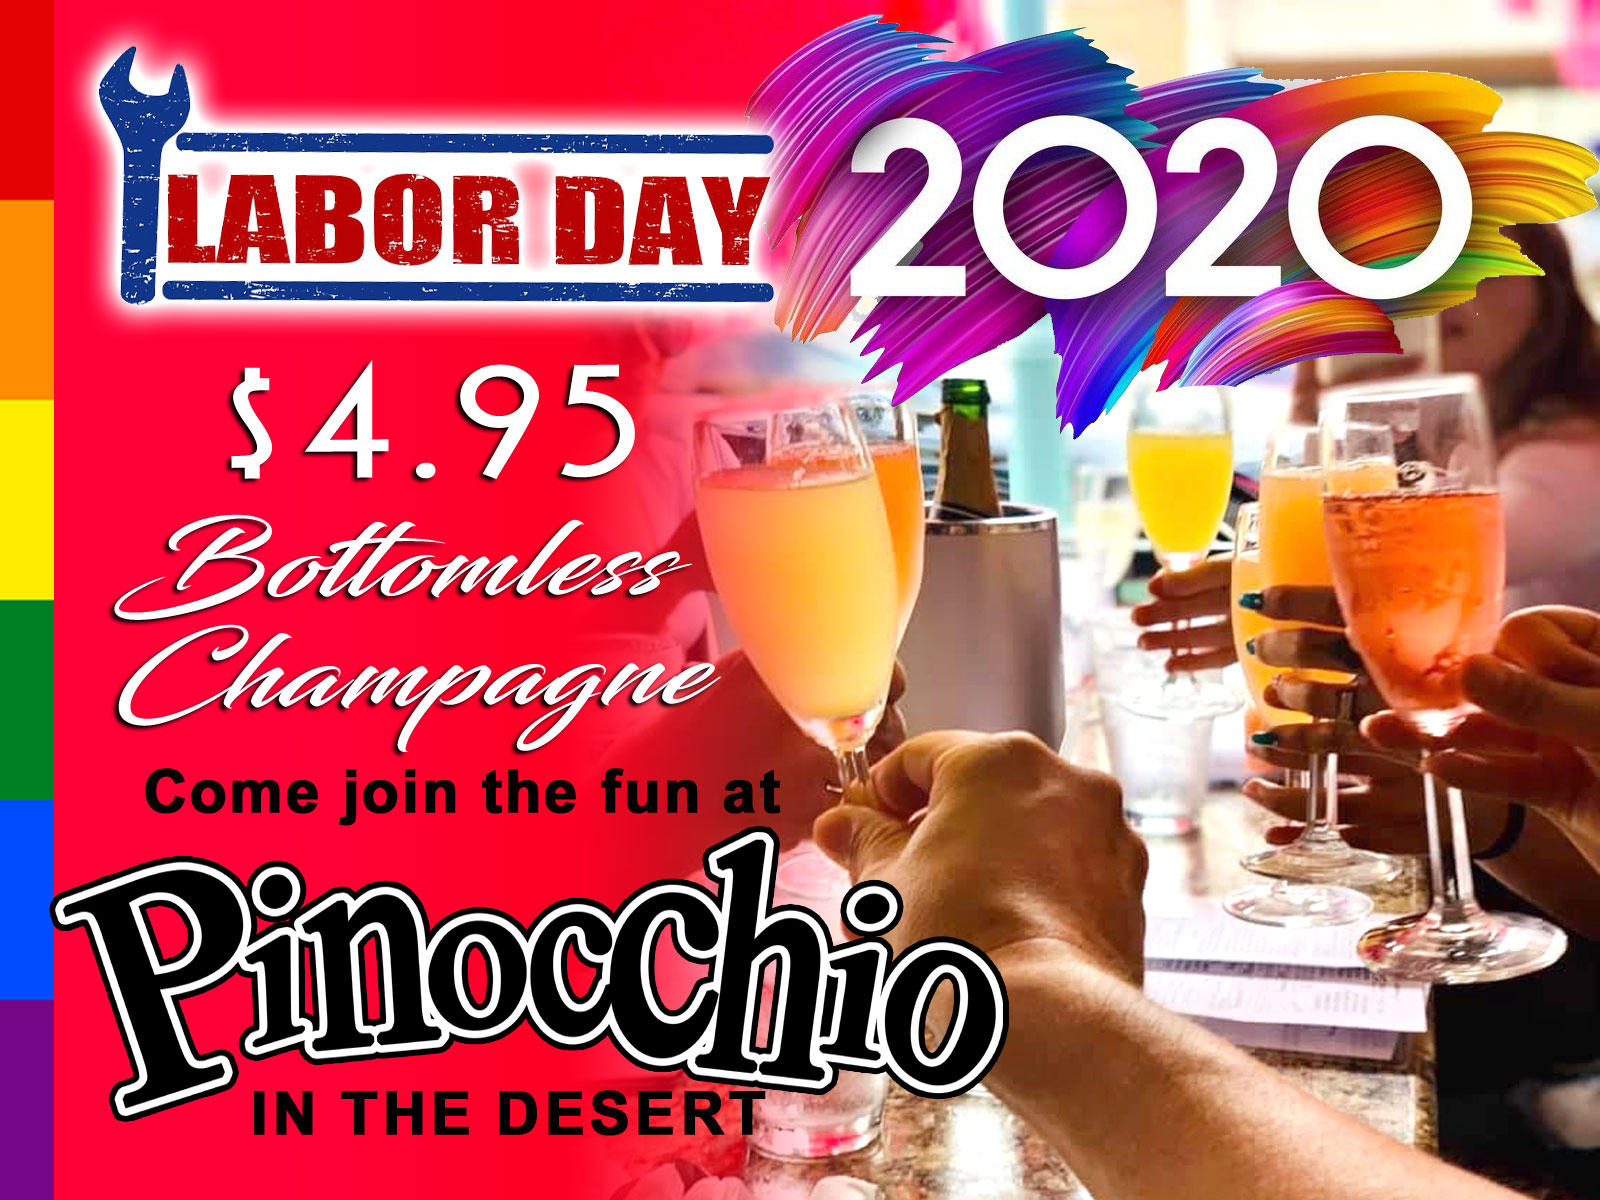 Happy Labor Day 2020 - Bottomless Champagne